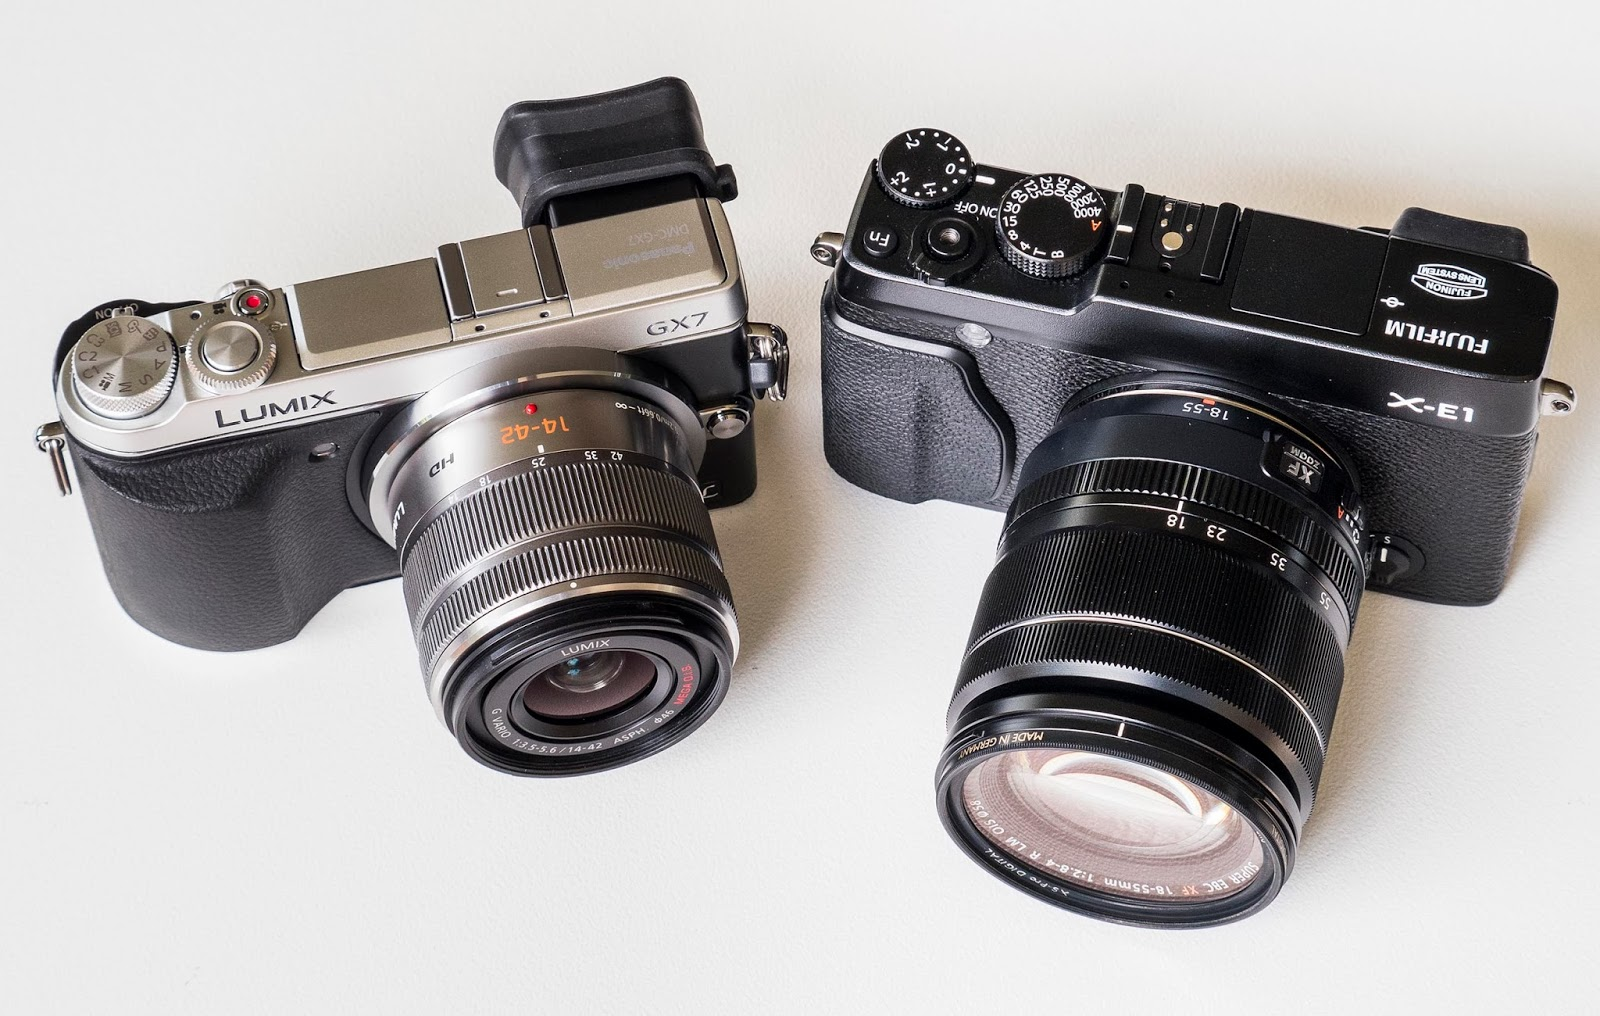 GX7 with 14-42mm Mk2 lens. On the right Fuji X-E1 with 18-55mm lens